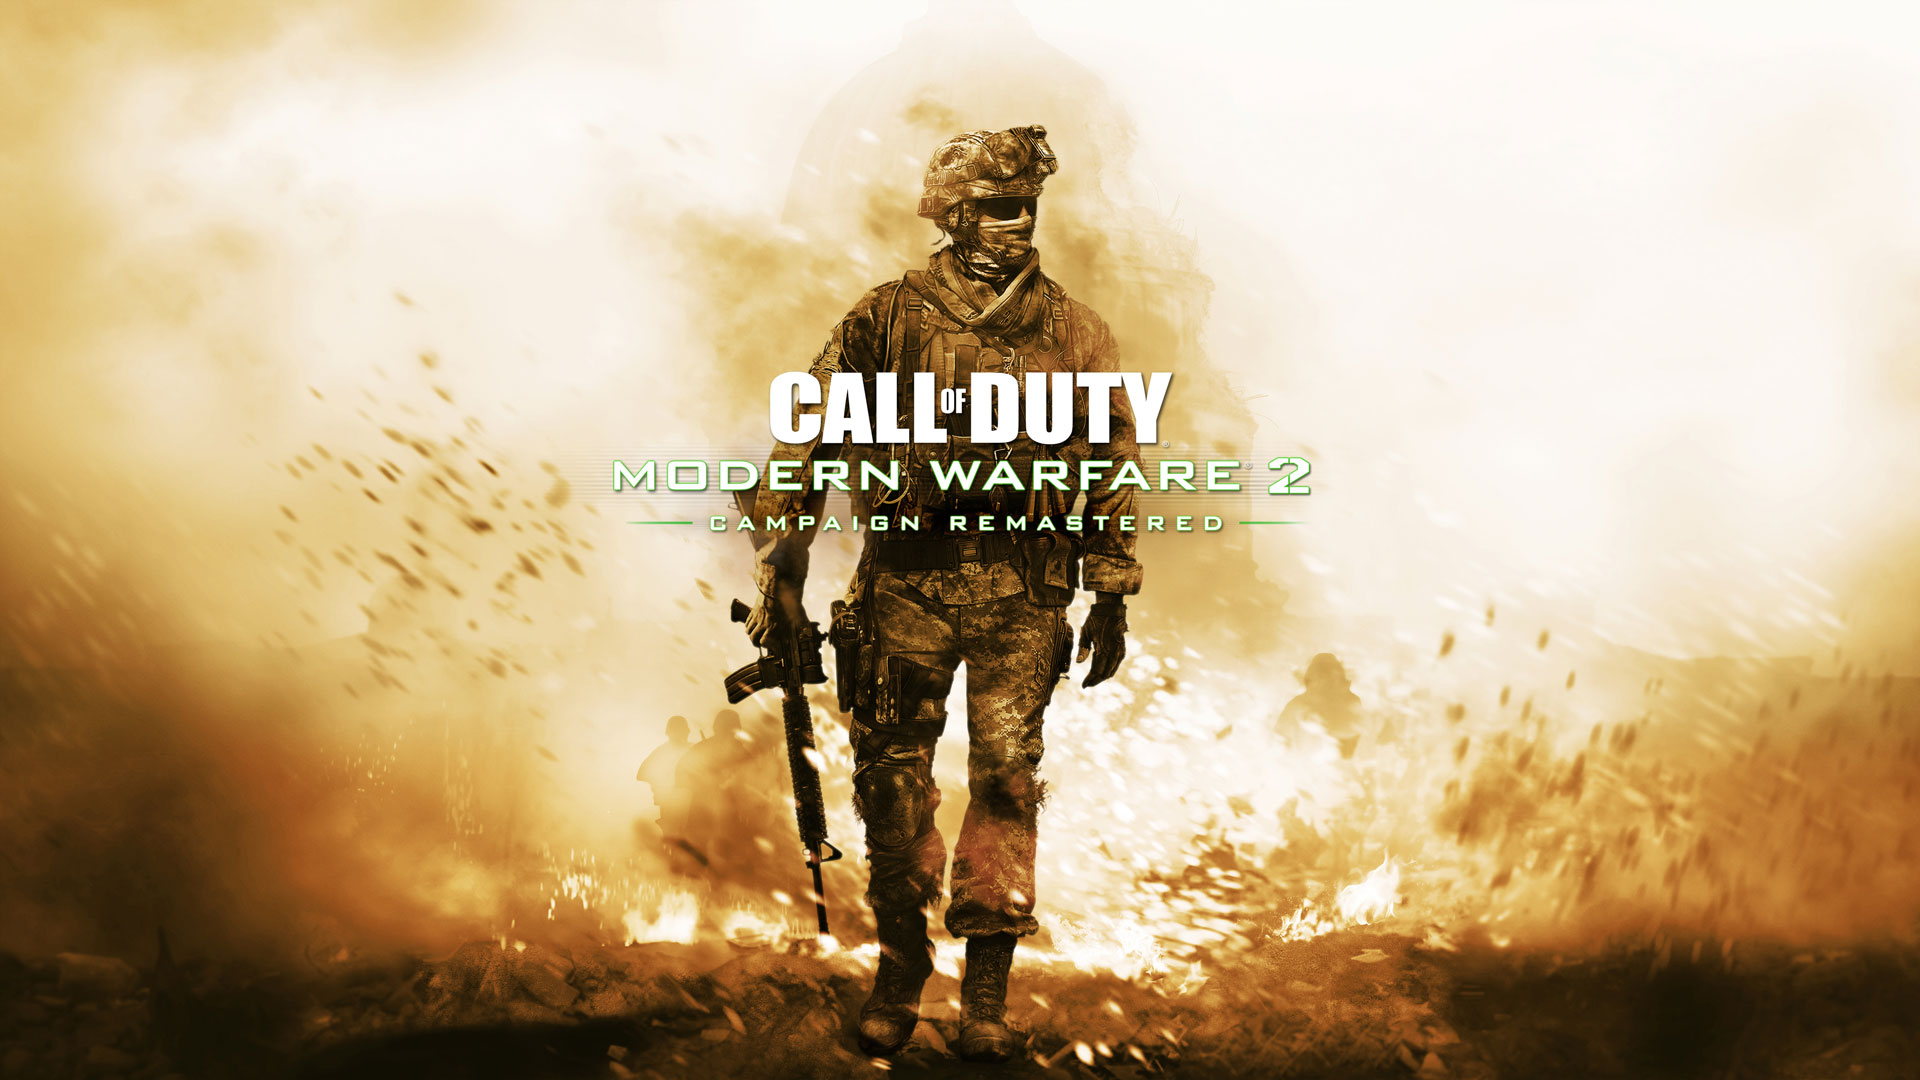 Announcing Call Of Duty Modern Warfare 2 Campaign Remastered